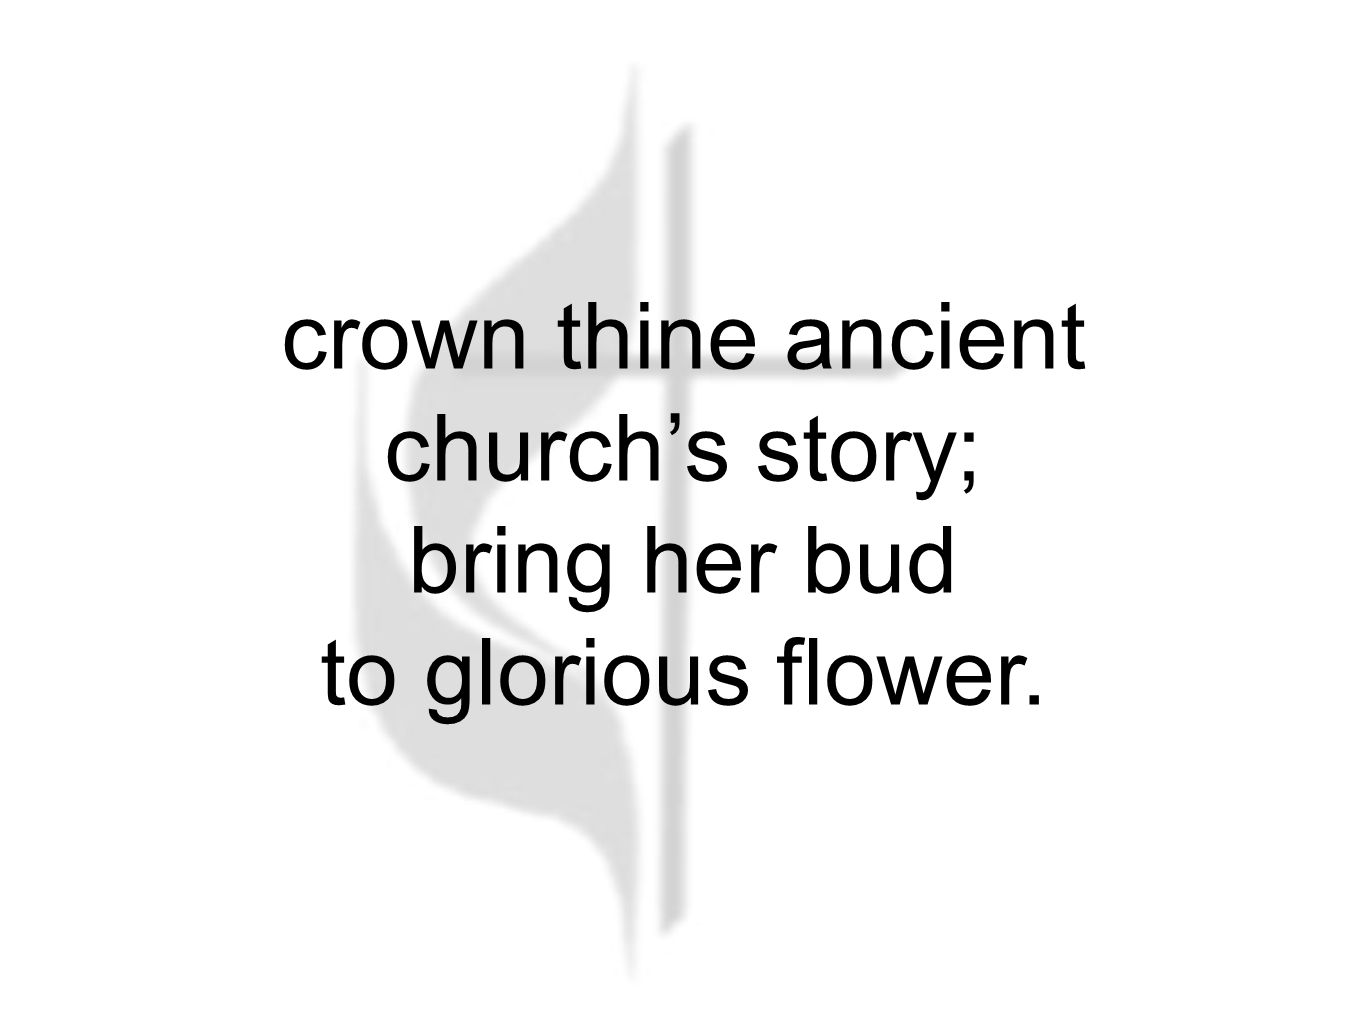 crown thine ancient church's story; bring her bud to glorious flower.